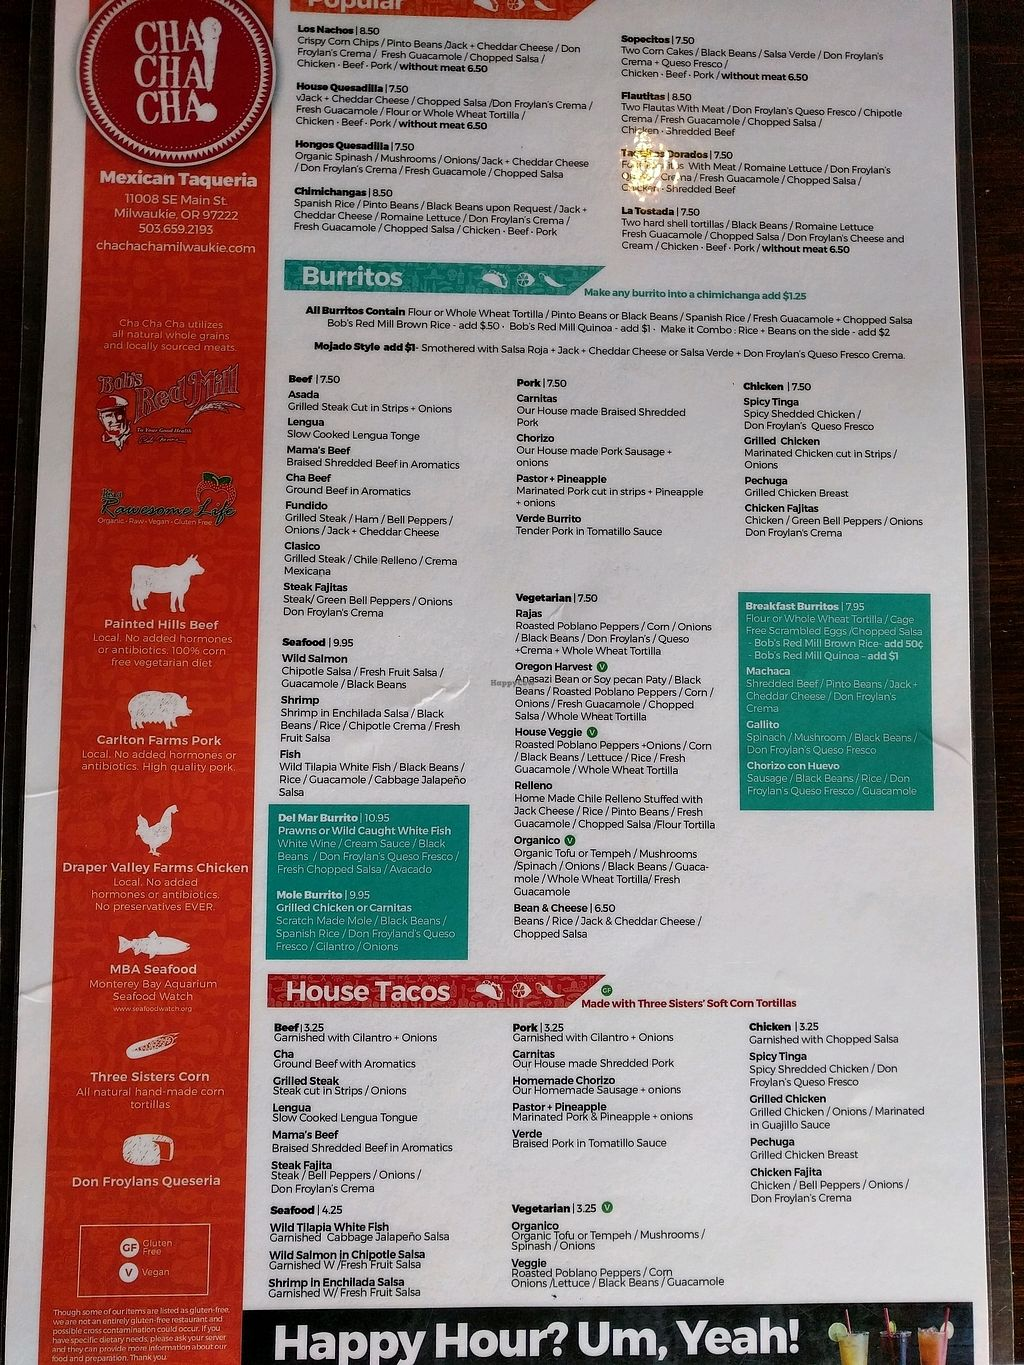 """Photo of Cha! Cha! Cha! - Milwaukie  by <a href=""""/members/profile/The%20Hungry%20Vegan"""">The Hungry Vegan</a> <br/>Menu <br/> November 23, 2017  - <a href='/contact/abuse/image/73291/328375'>Report</a>"""